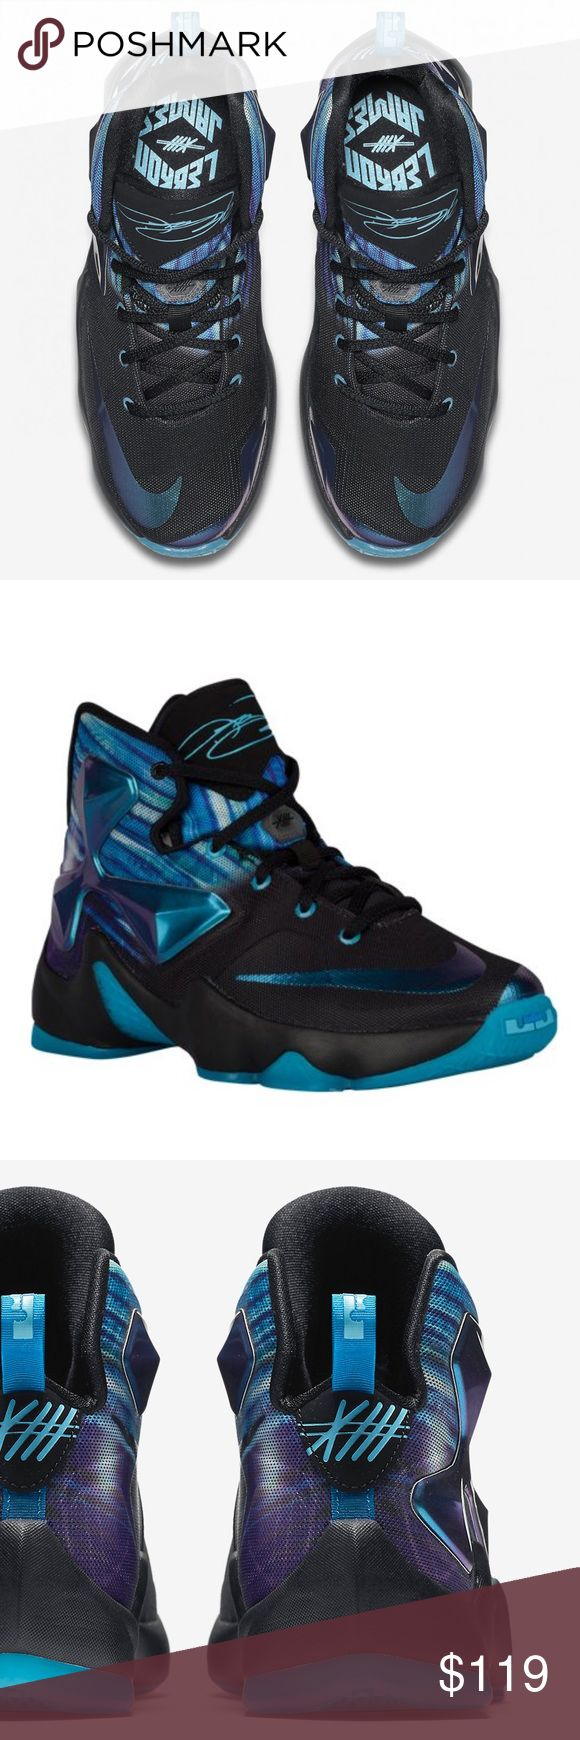 Lebron James GS 13 New!!!! Never worn!! I don't have the box any more tho. Nike LeBron 13 GS    Color: Black/White-Heritage Cyan-Bright Blue-Persian Style #: 808709-003 these sell for 169.99 right now! They are a youth 6.5 which according to Nike is a 8- 8 1/2 woman's.                                        TAGS: basketball, Jordan, Air Jordan, Nike air, Swoosh, shoes, high tops, boys, girls Nike Shoes Sneakers